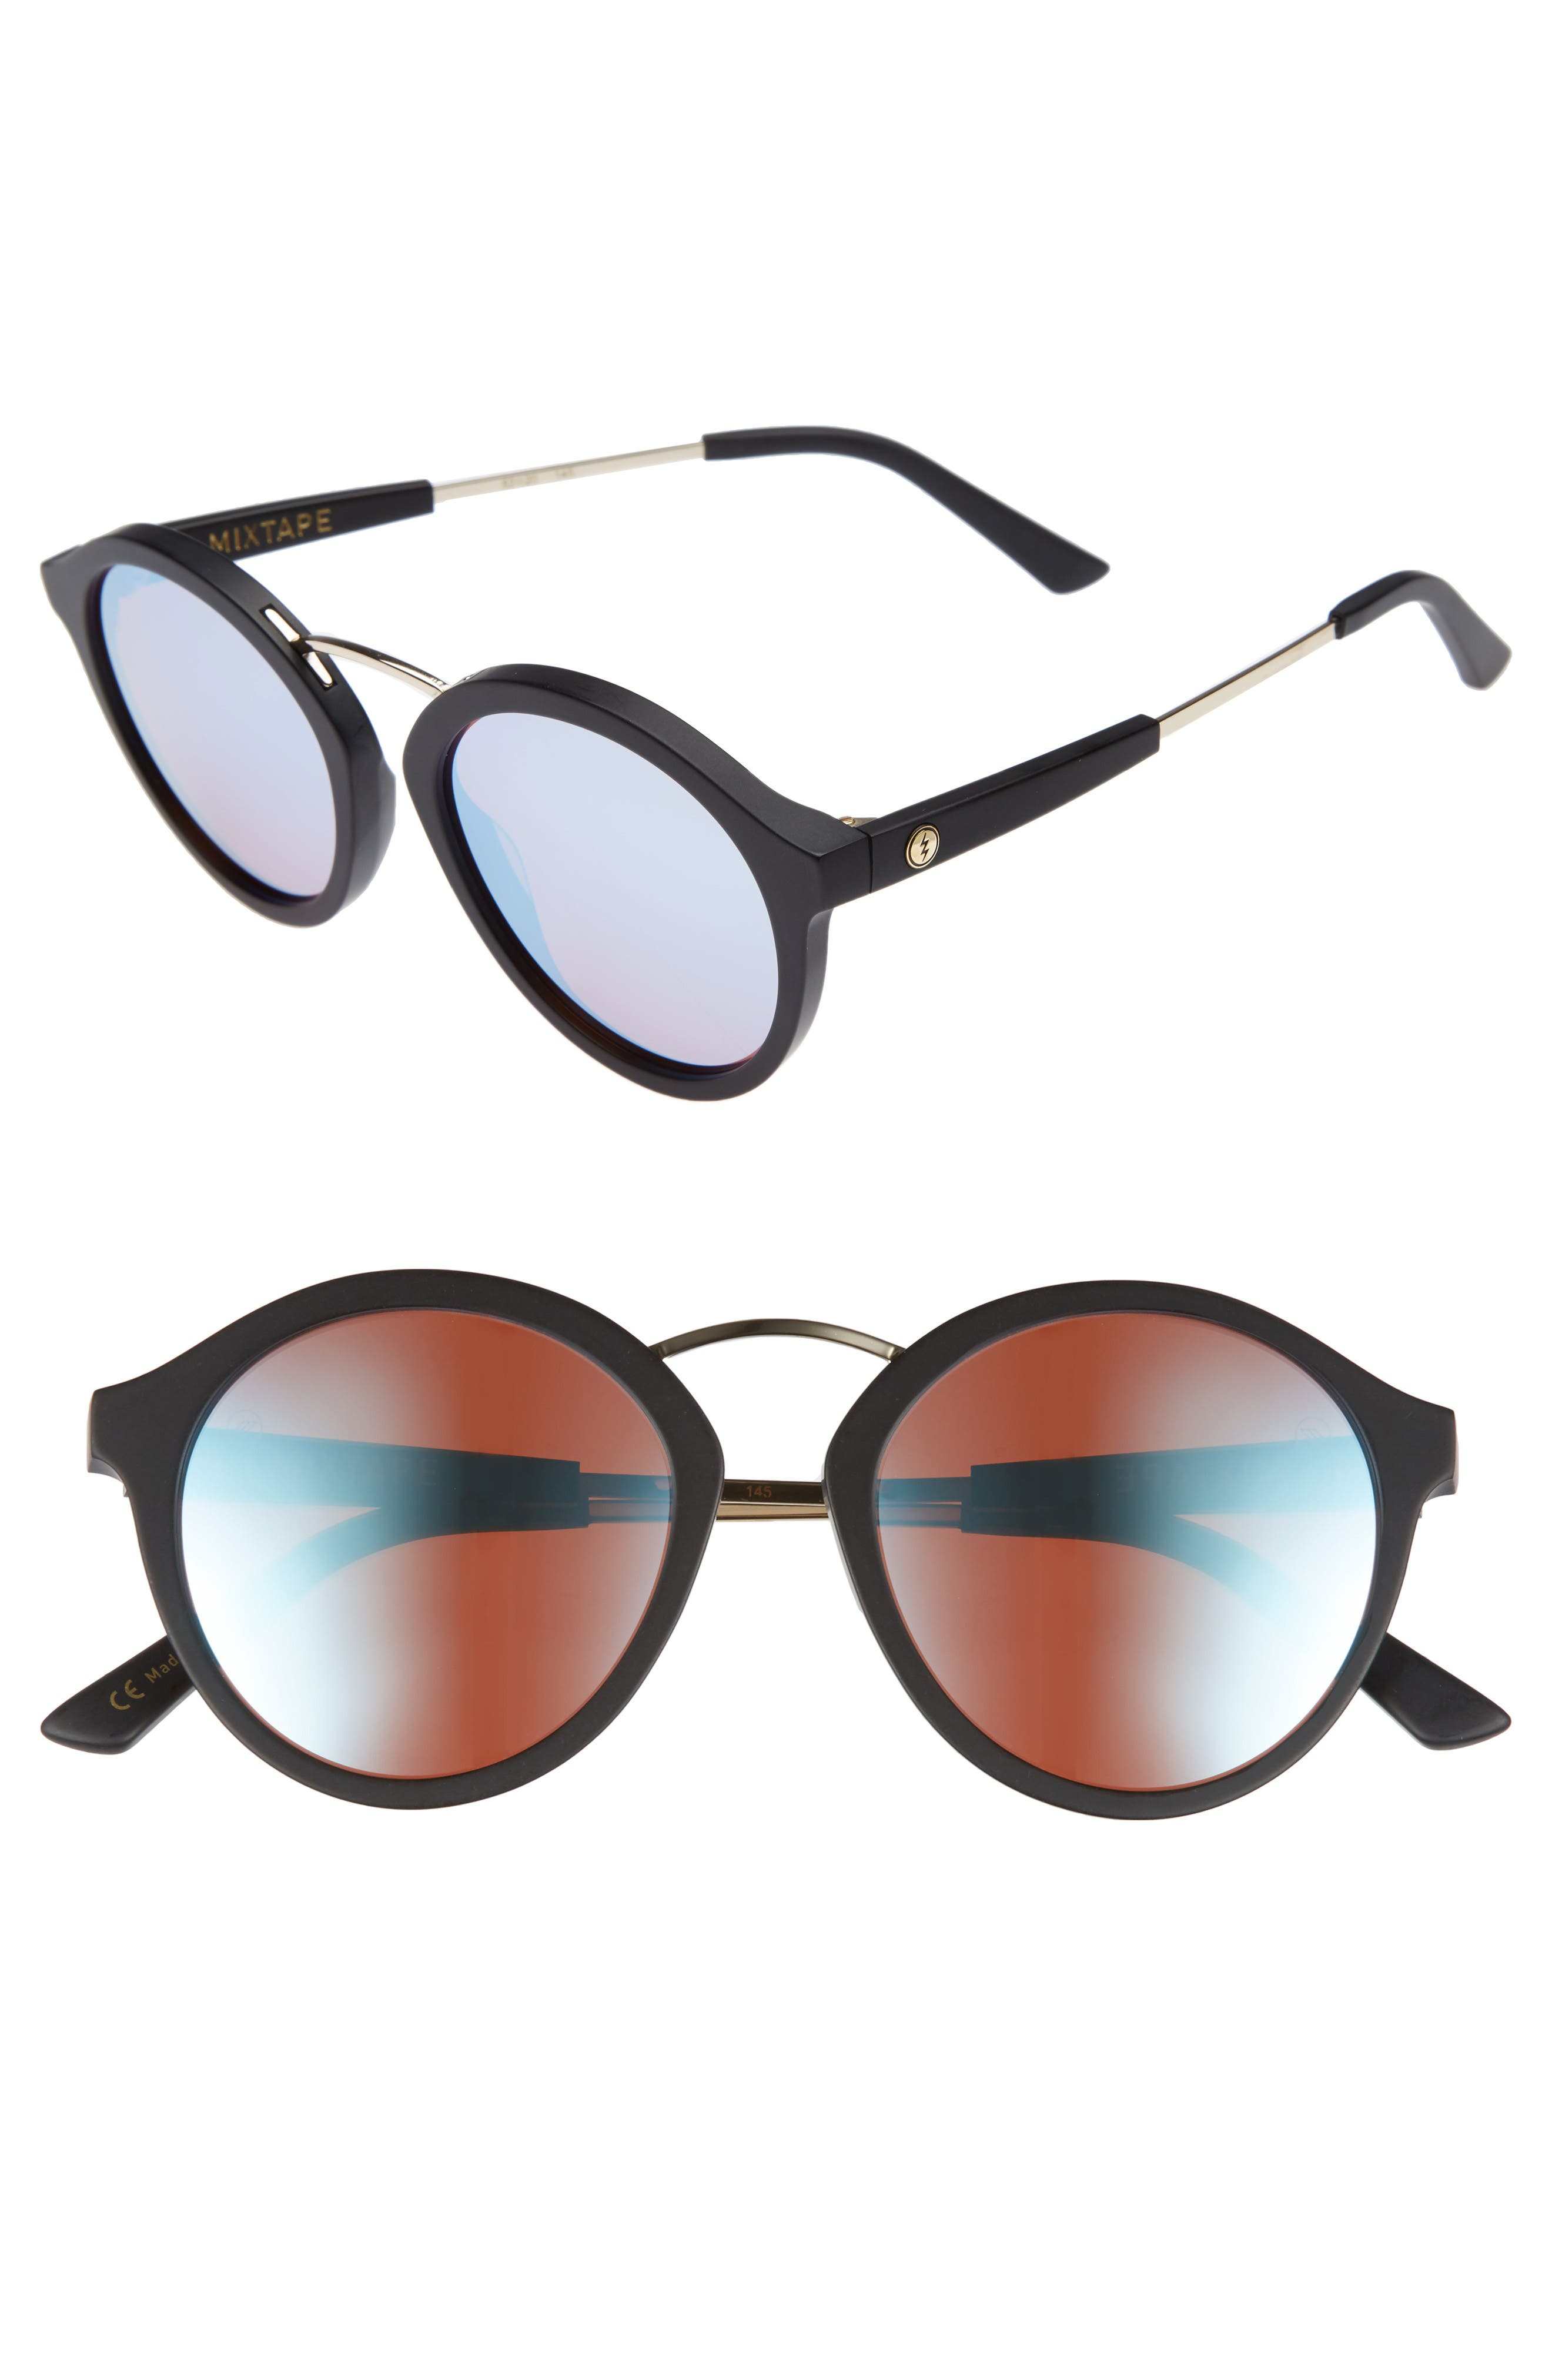 Mix Tape 52mm Mirrored Round Sunglasses,                             Main thumbnail 1, color,                             Matte Black/ Sky Blue Chrome